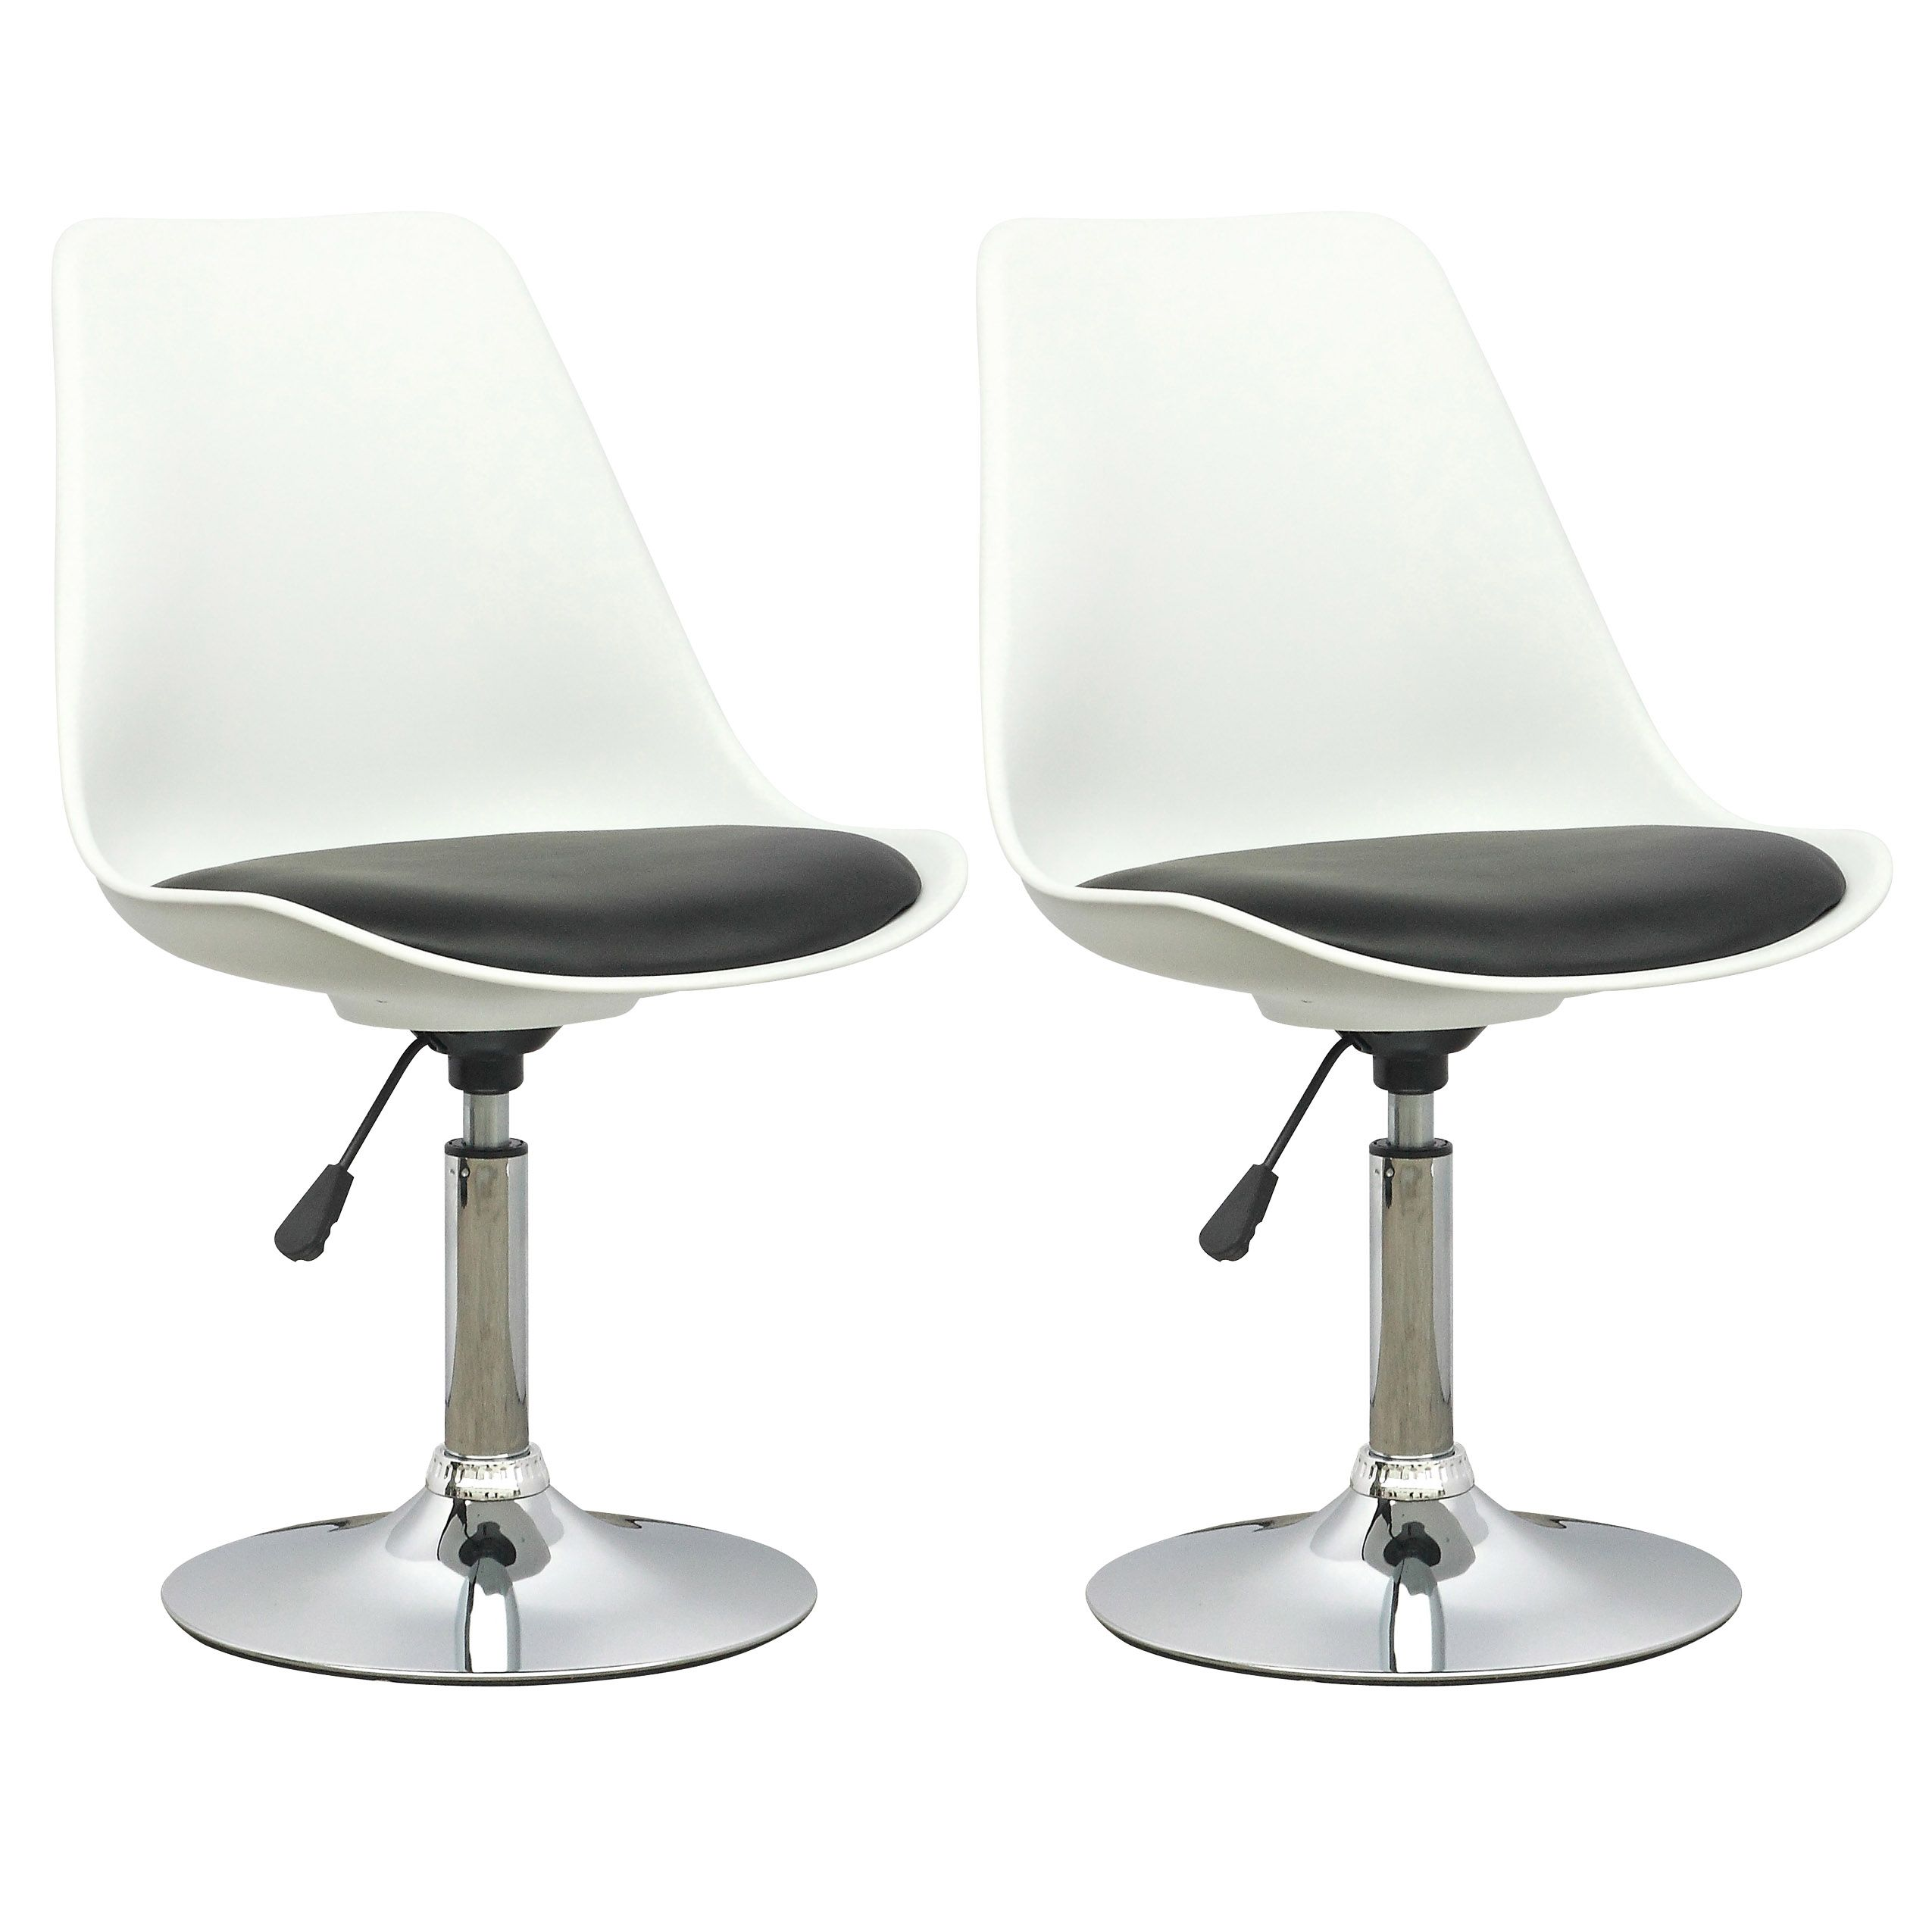 Corliving white adjustable chair with black leatherette